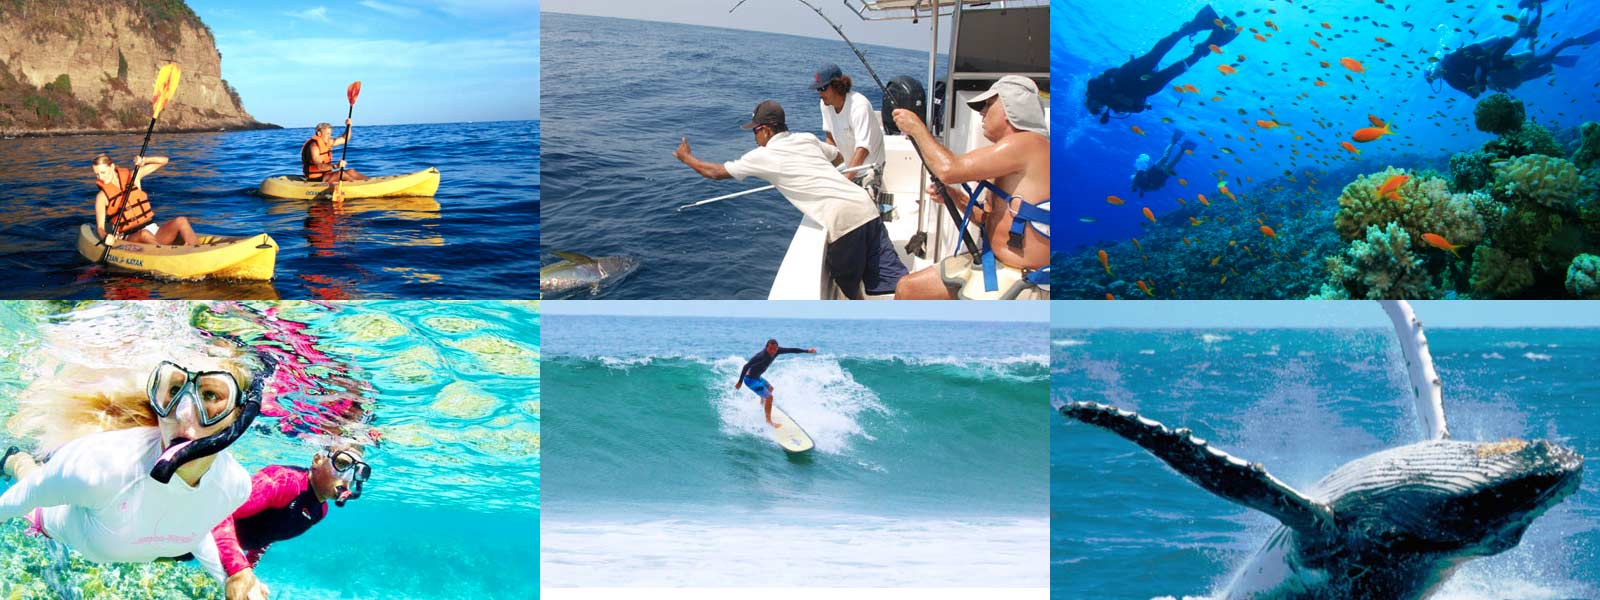 Punta Mita is much more than golf. Enjoy a world of water sports and deep surfing culture along the coastline.